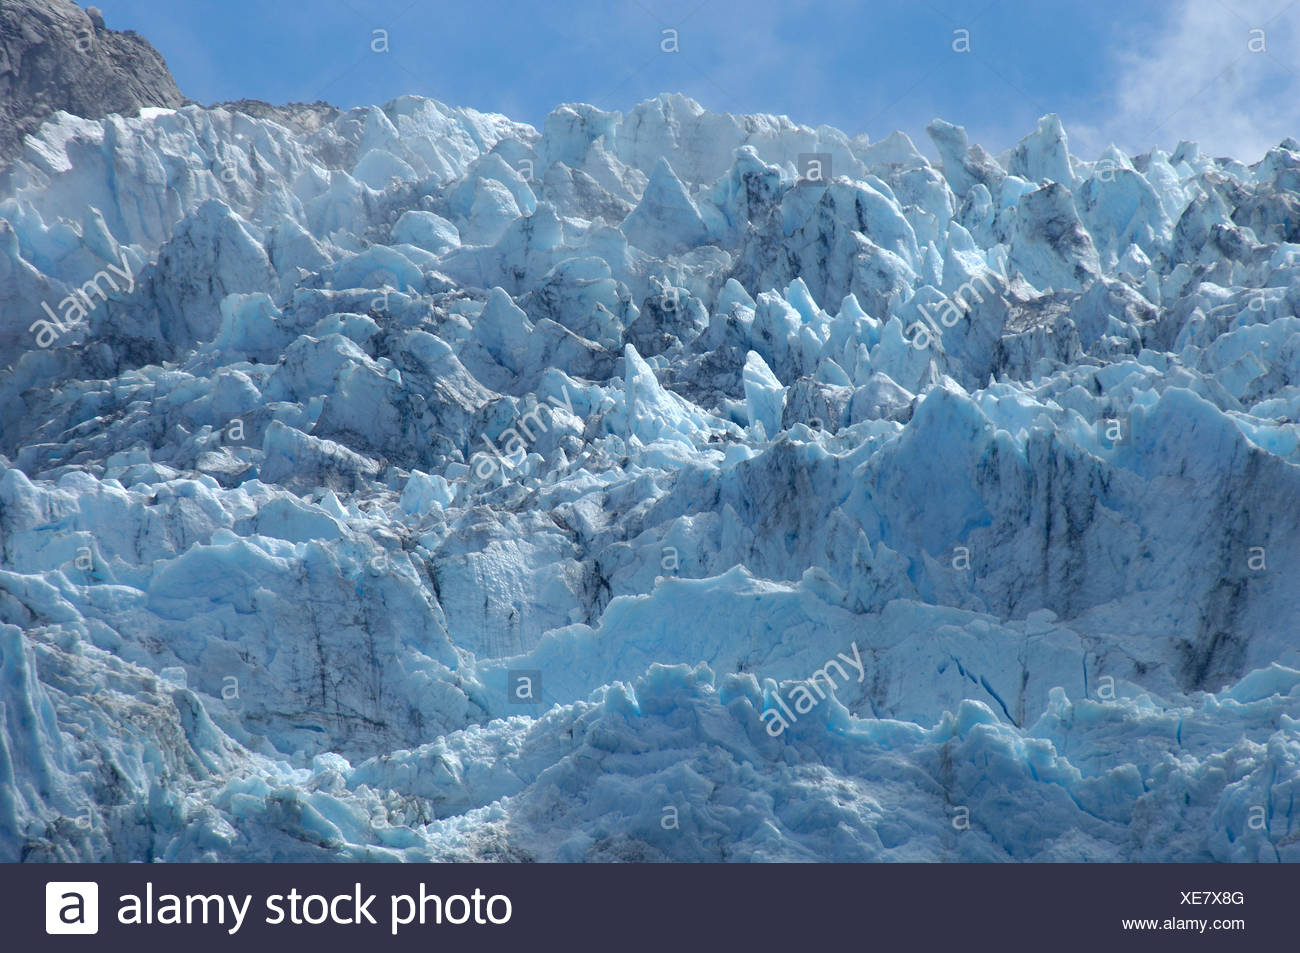 glacier Ventisquero Colgante ice scenery mountains Parque Nacional national park Queulat near Puyuhuapi As s - Stock Image